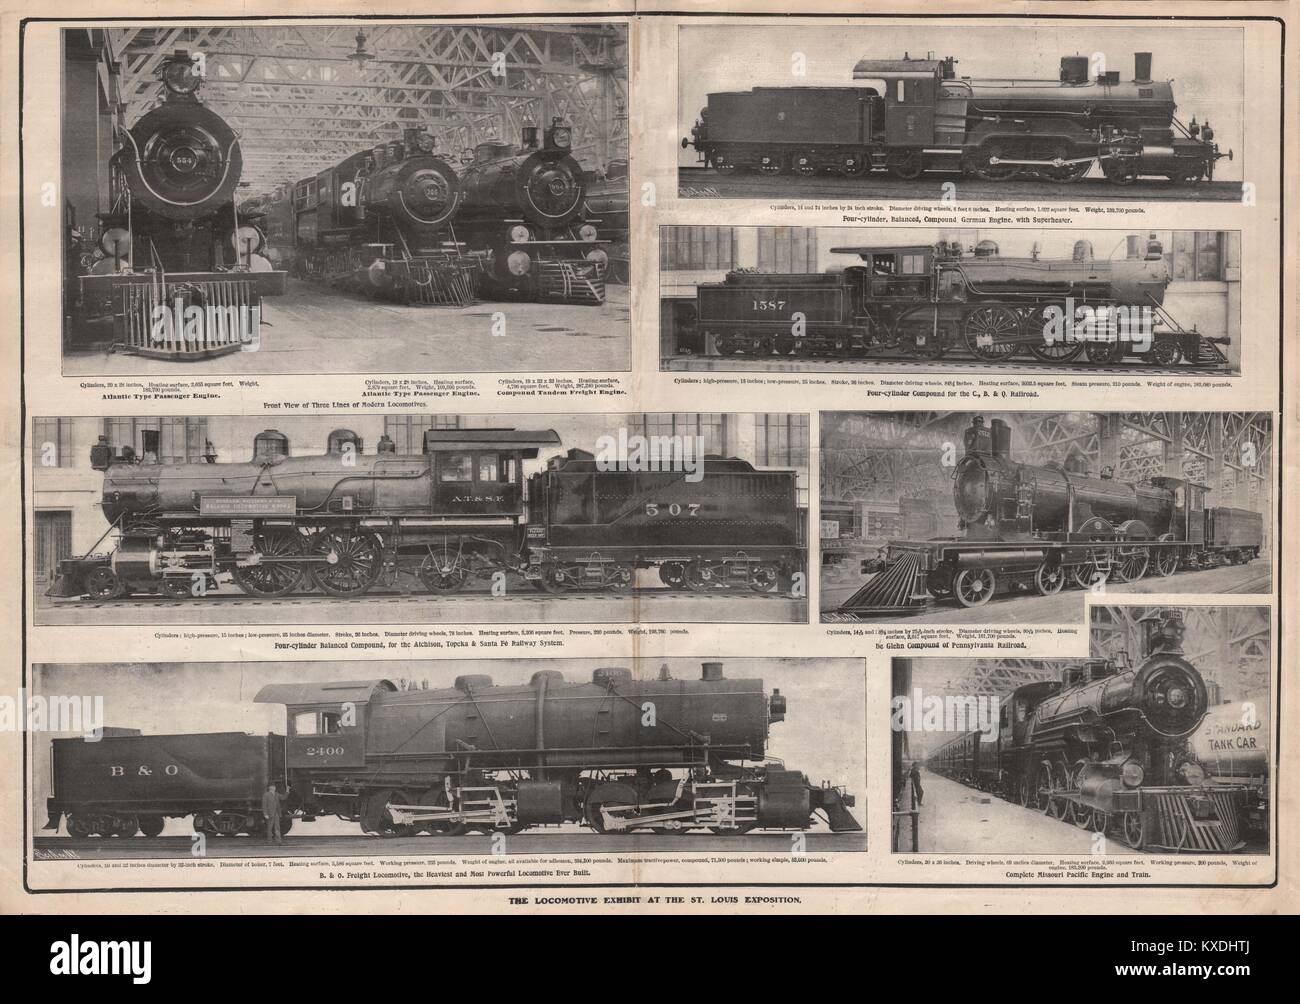 Front View of Three lines of Modern Locomotives. Atlantic Type passenger Engine, Cylinders, 20x28 inches. Heating - Stock Image